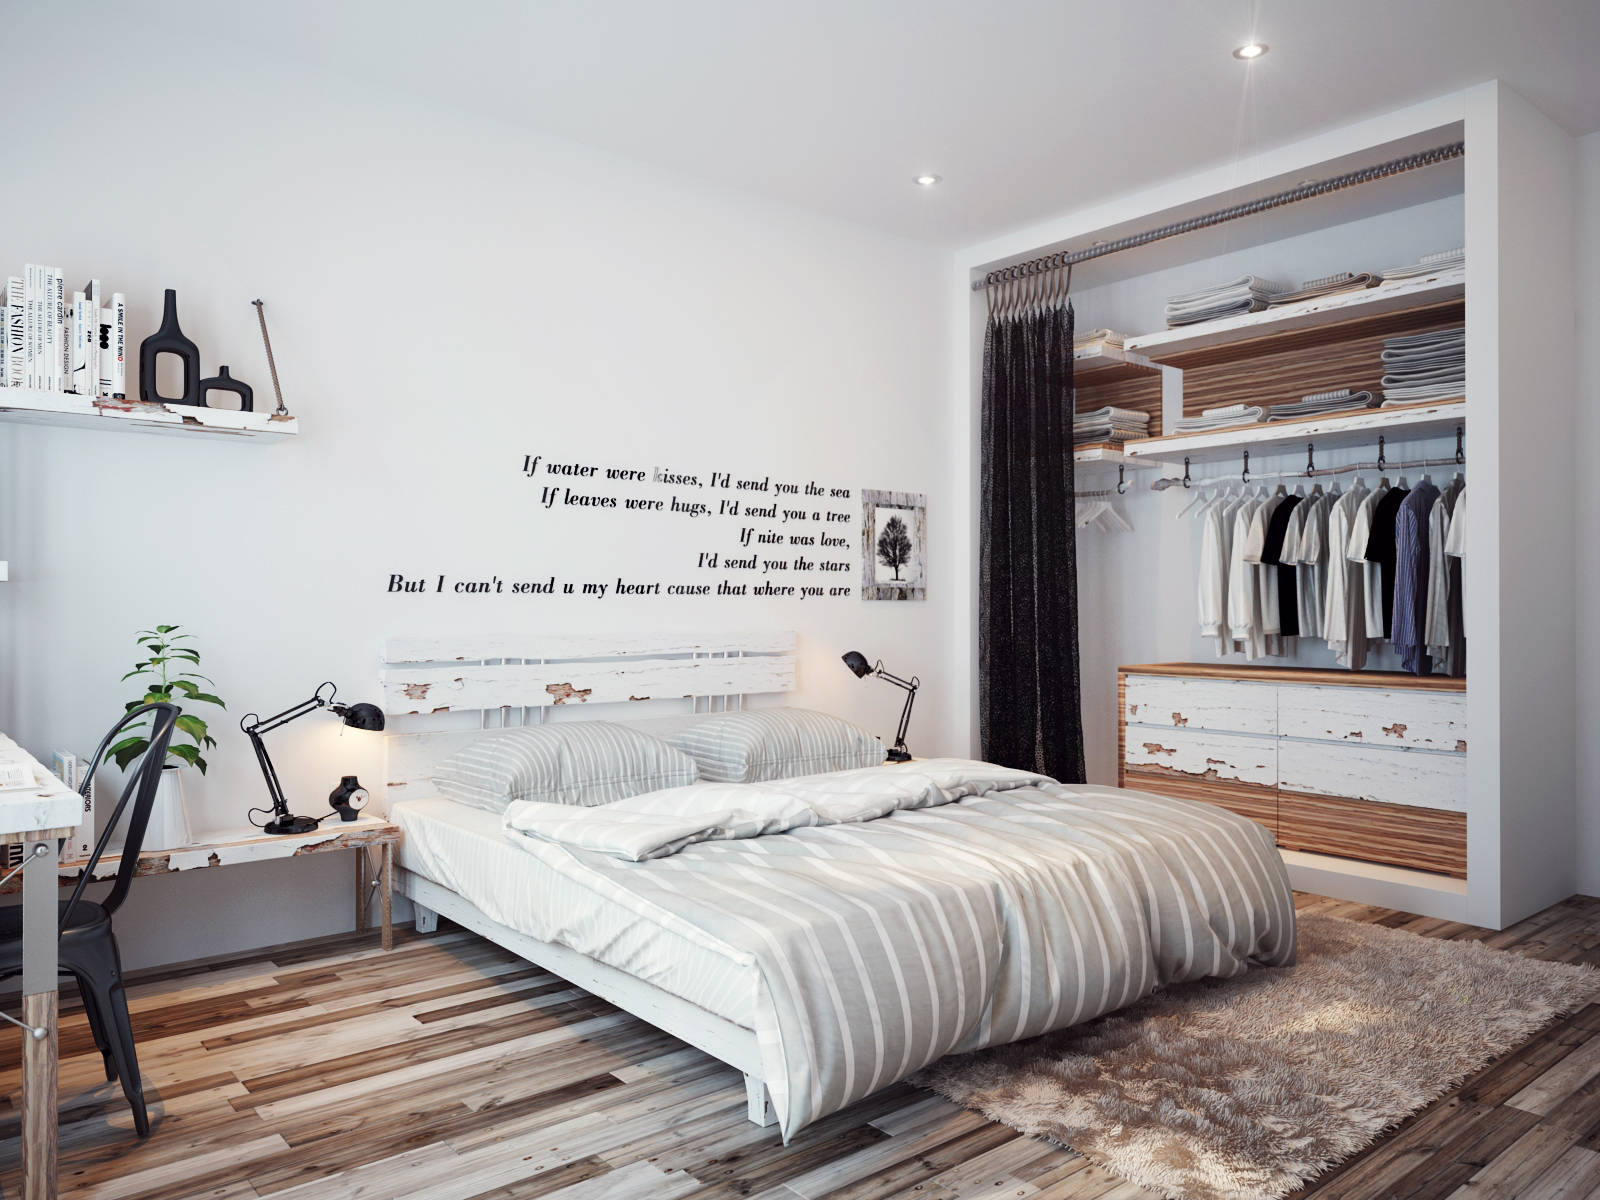 Walls decorated sparsely with poetic quotes make this modern bedroom